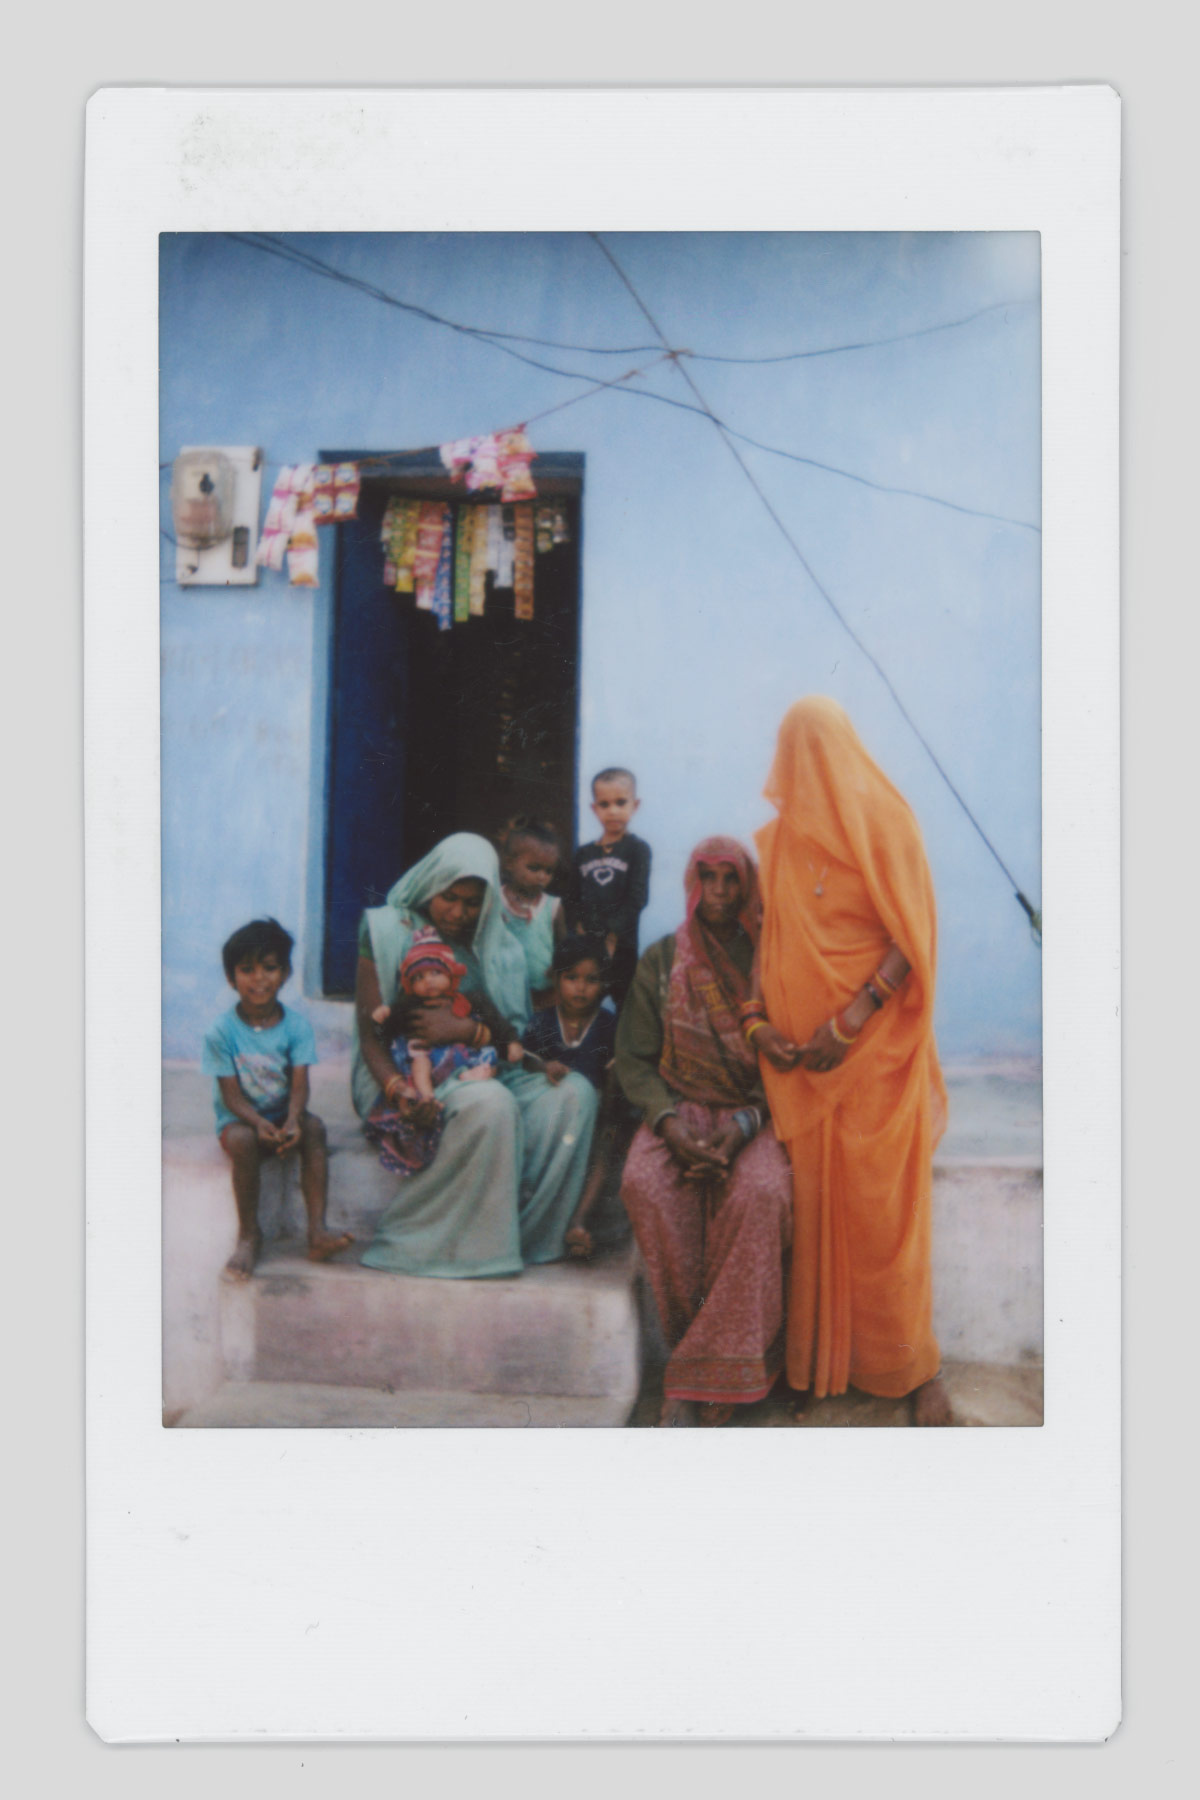 giulio_favotto_india_details_polaroid_instax_13